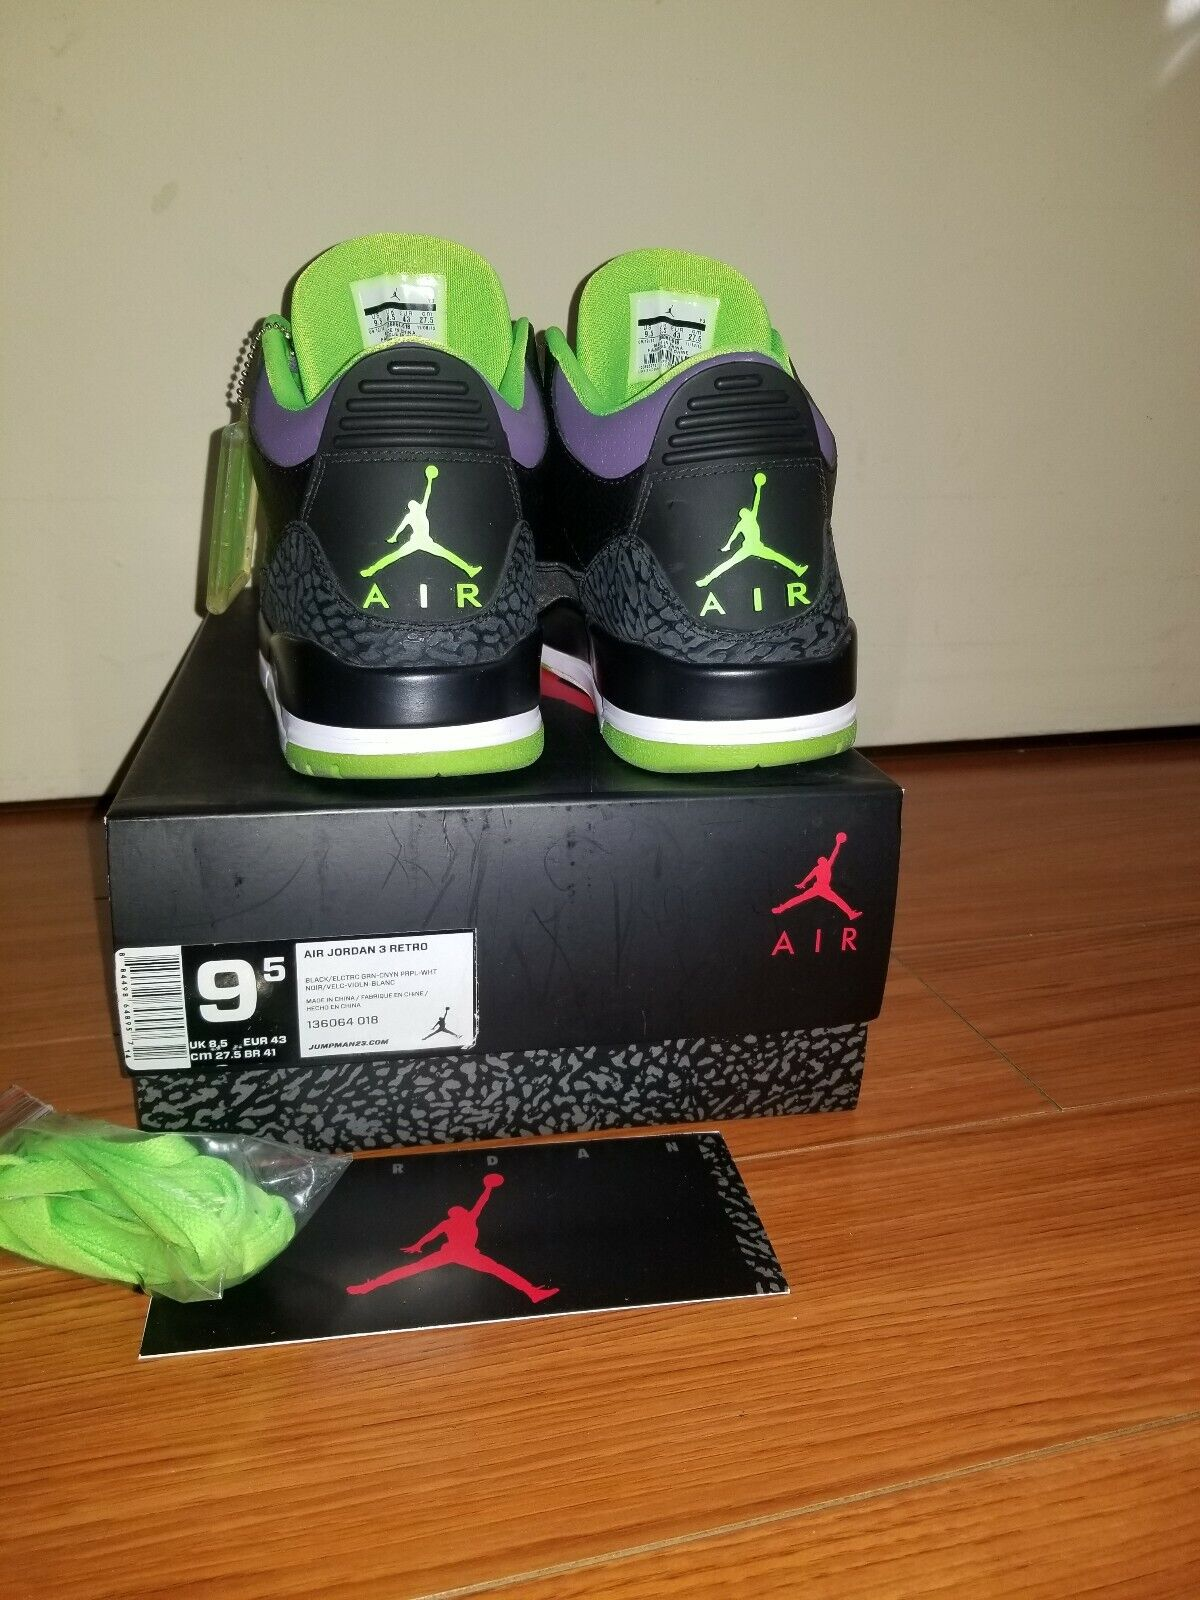 Nike Air Jordan 3 iii Joker Joker Joker black white cement 88 dunk JTH free throw line NRG dcb2e8